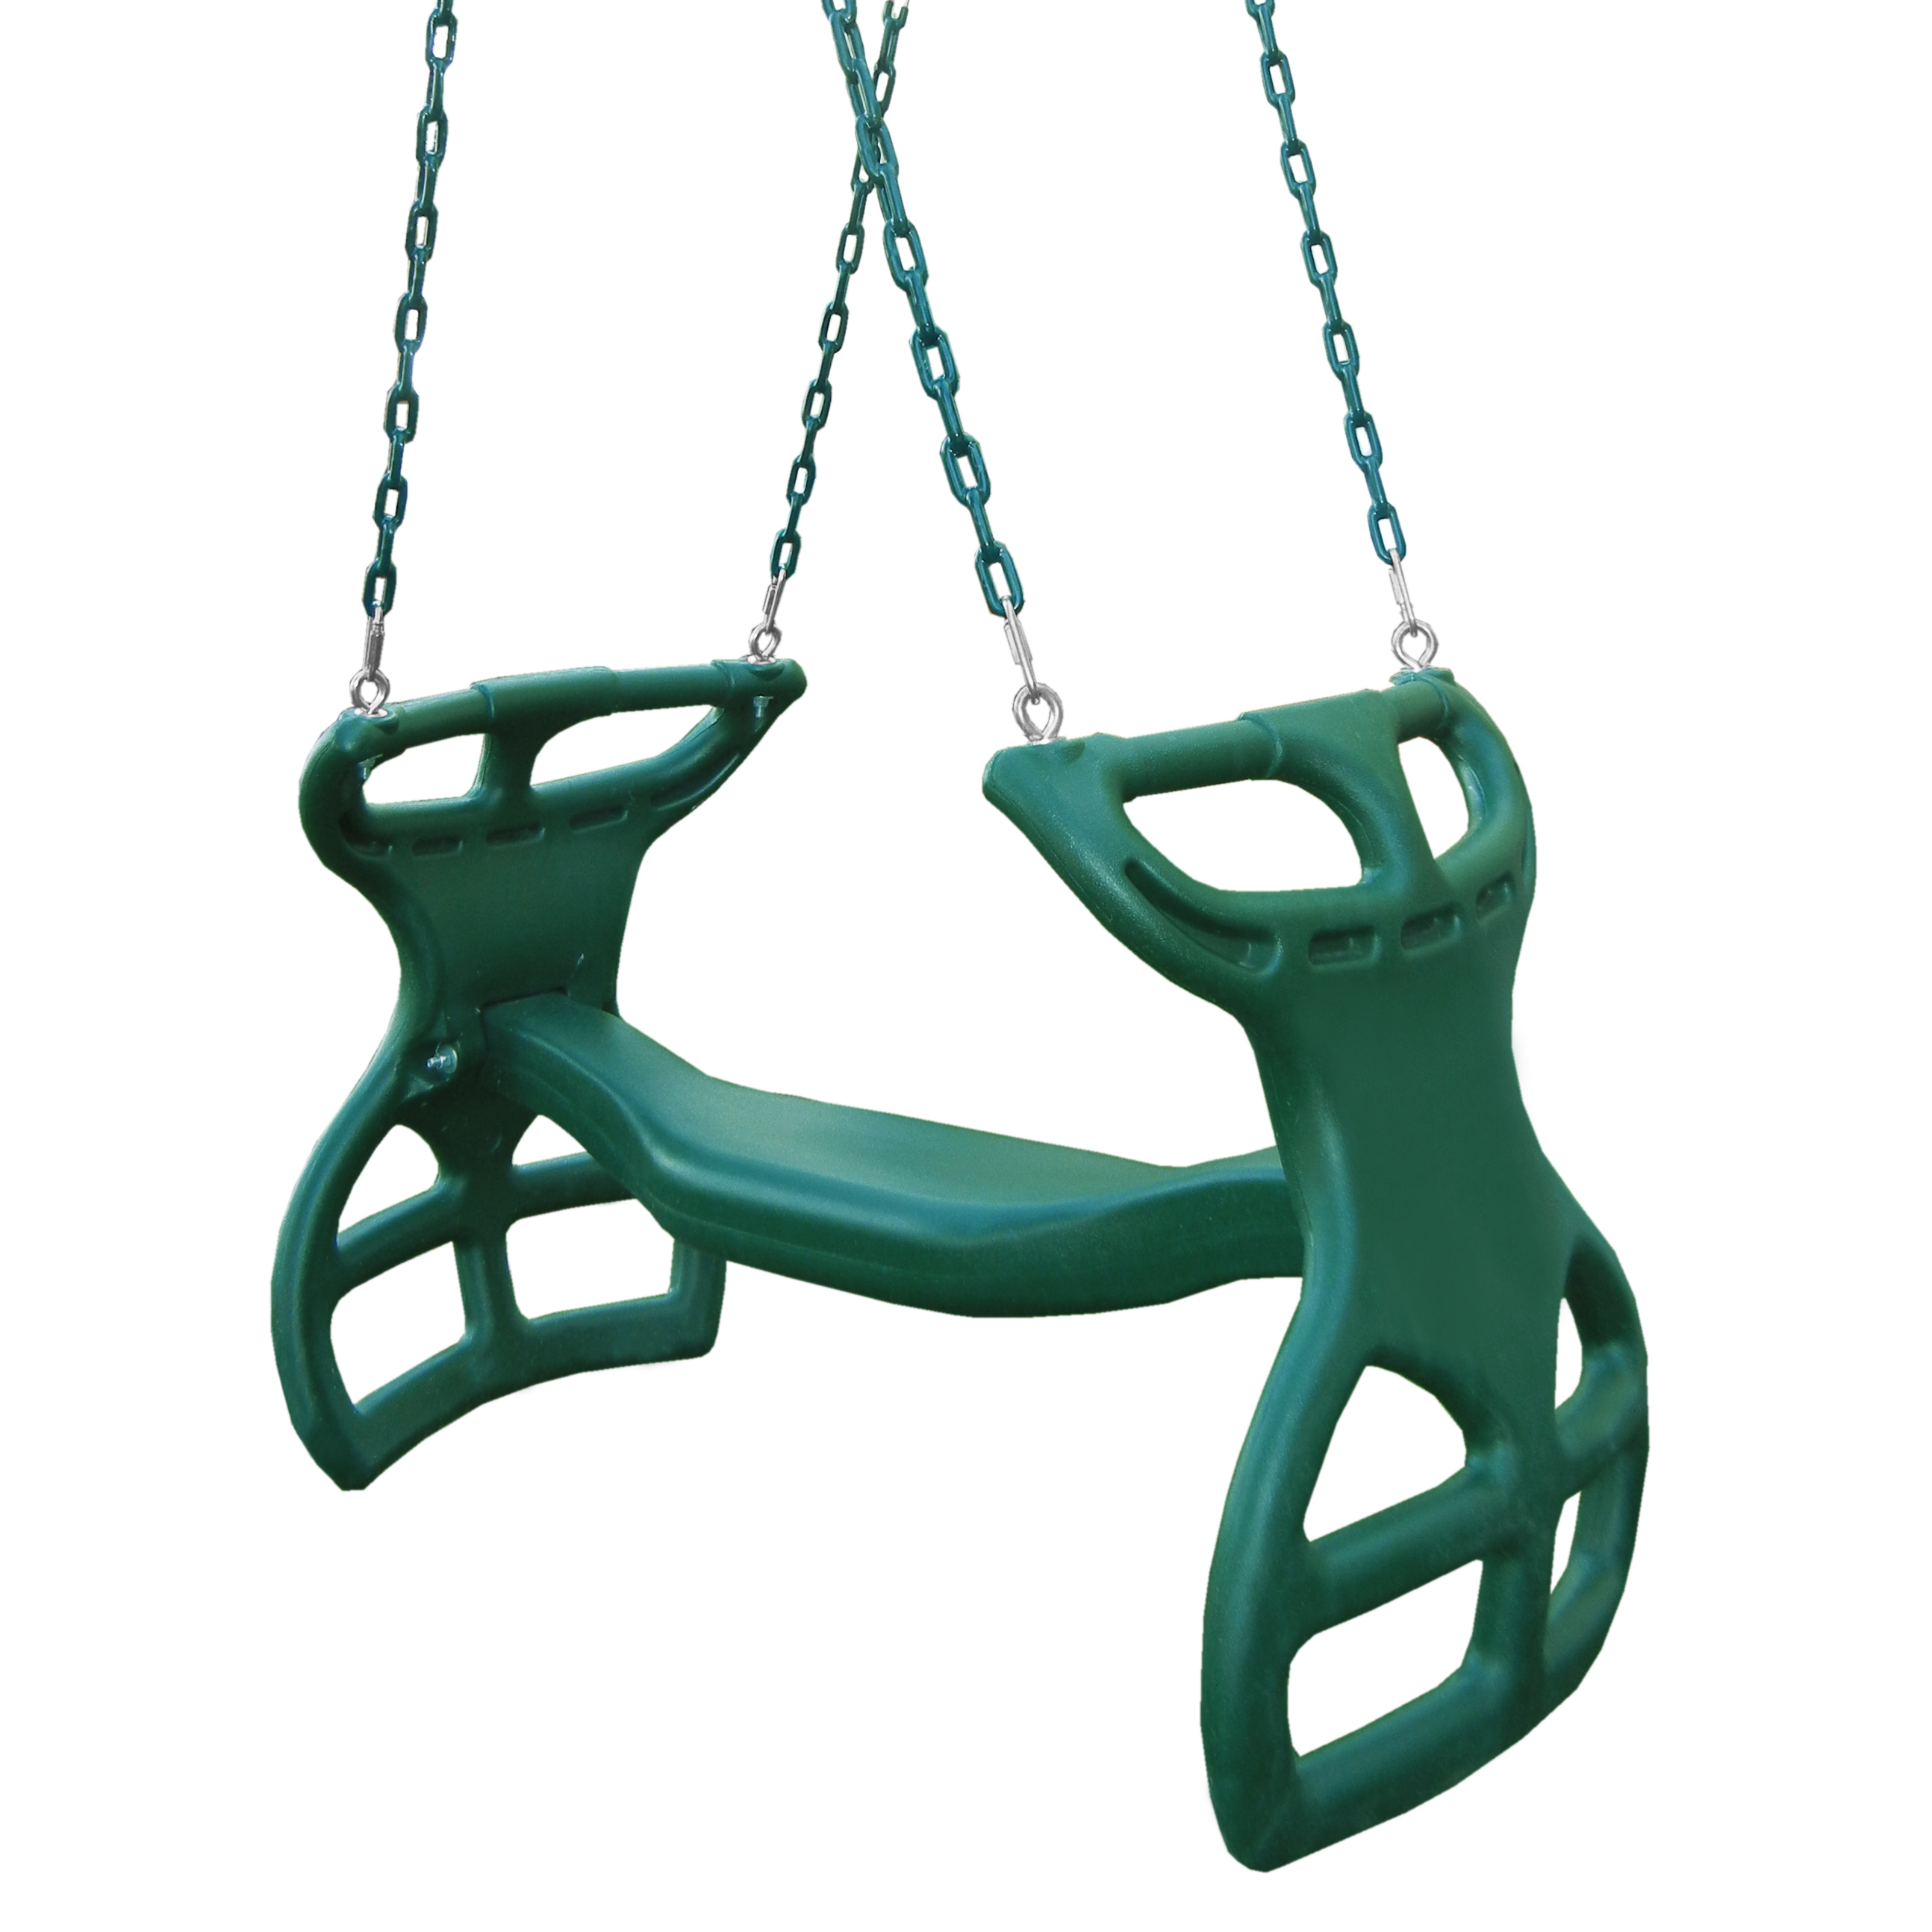 Alternate shot of Double Glider Swing from PlayNation.